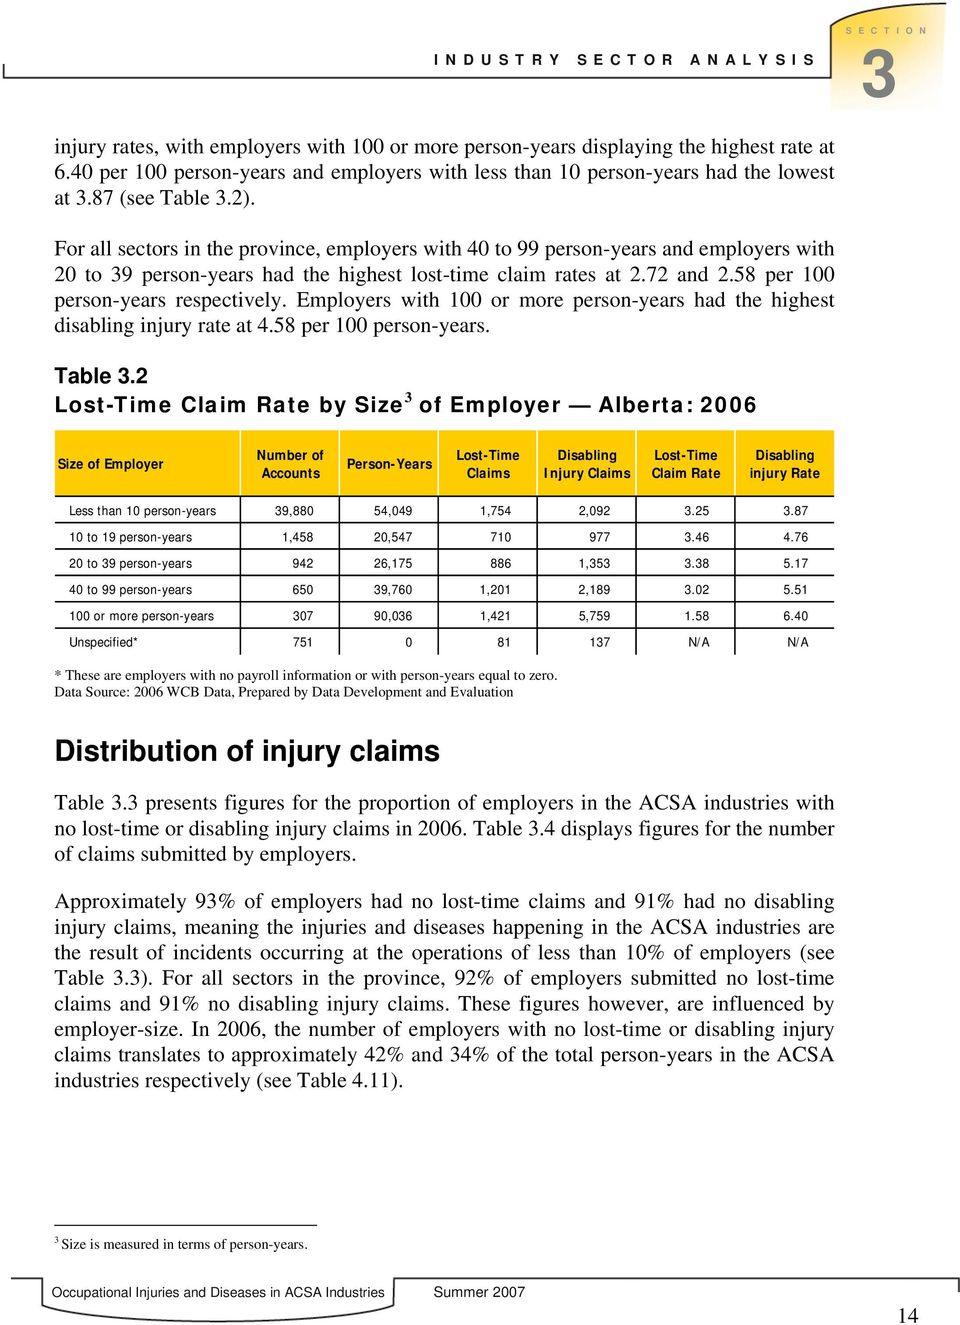 For all sectors in the province, employers with 40 to 99 person-years and employers with 20 to 39 person-years had the highest lost-time claim rates at 2.72 and 2.58 per 100 person-years respectively.